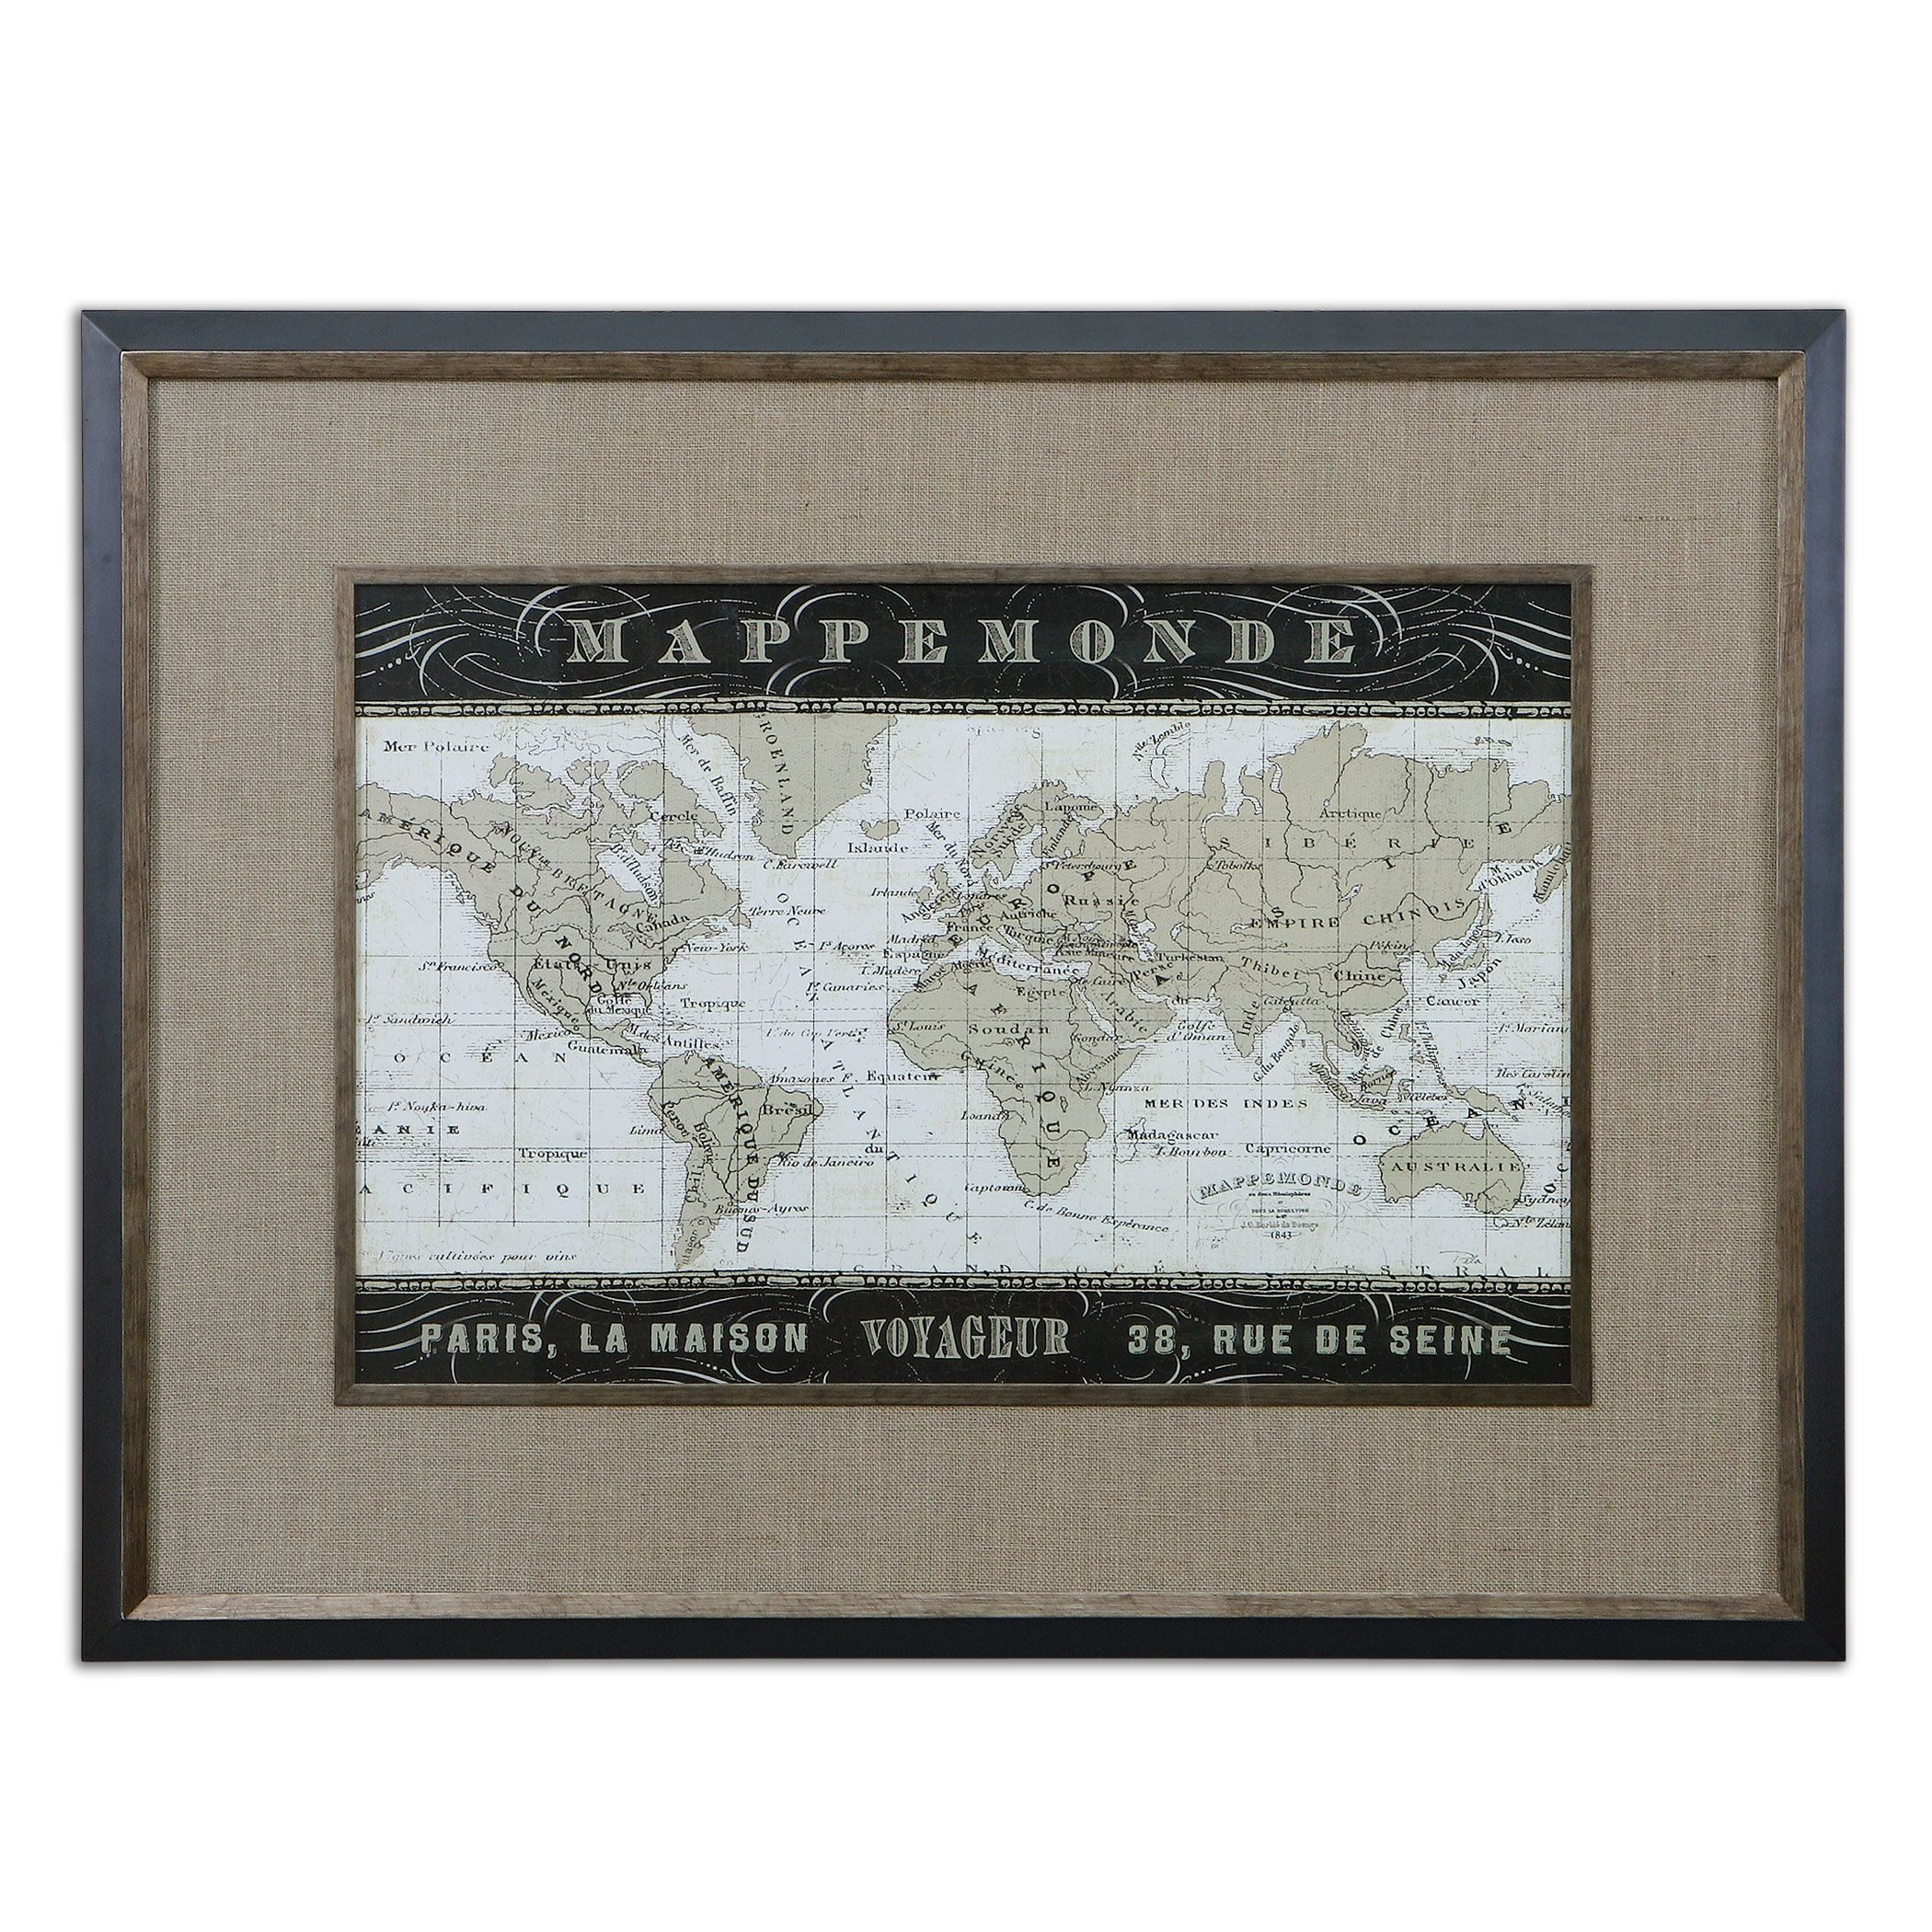 Uttermost 41420 Mappemonde Framed Art